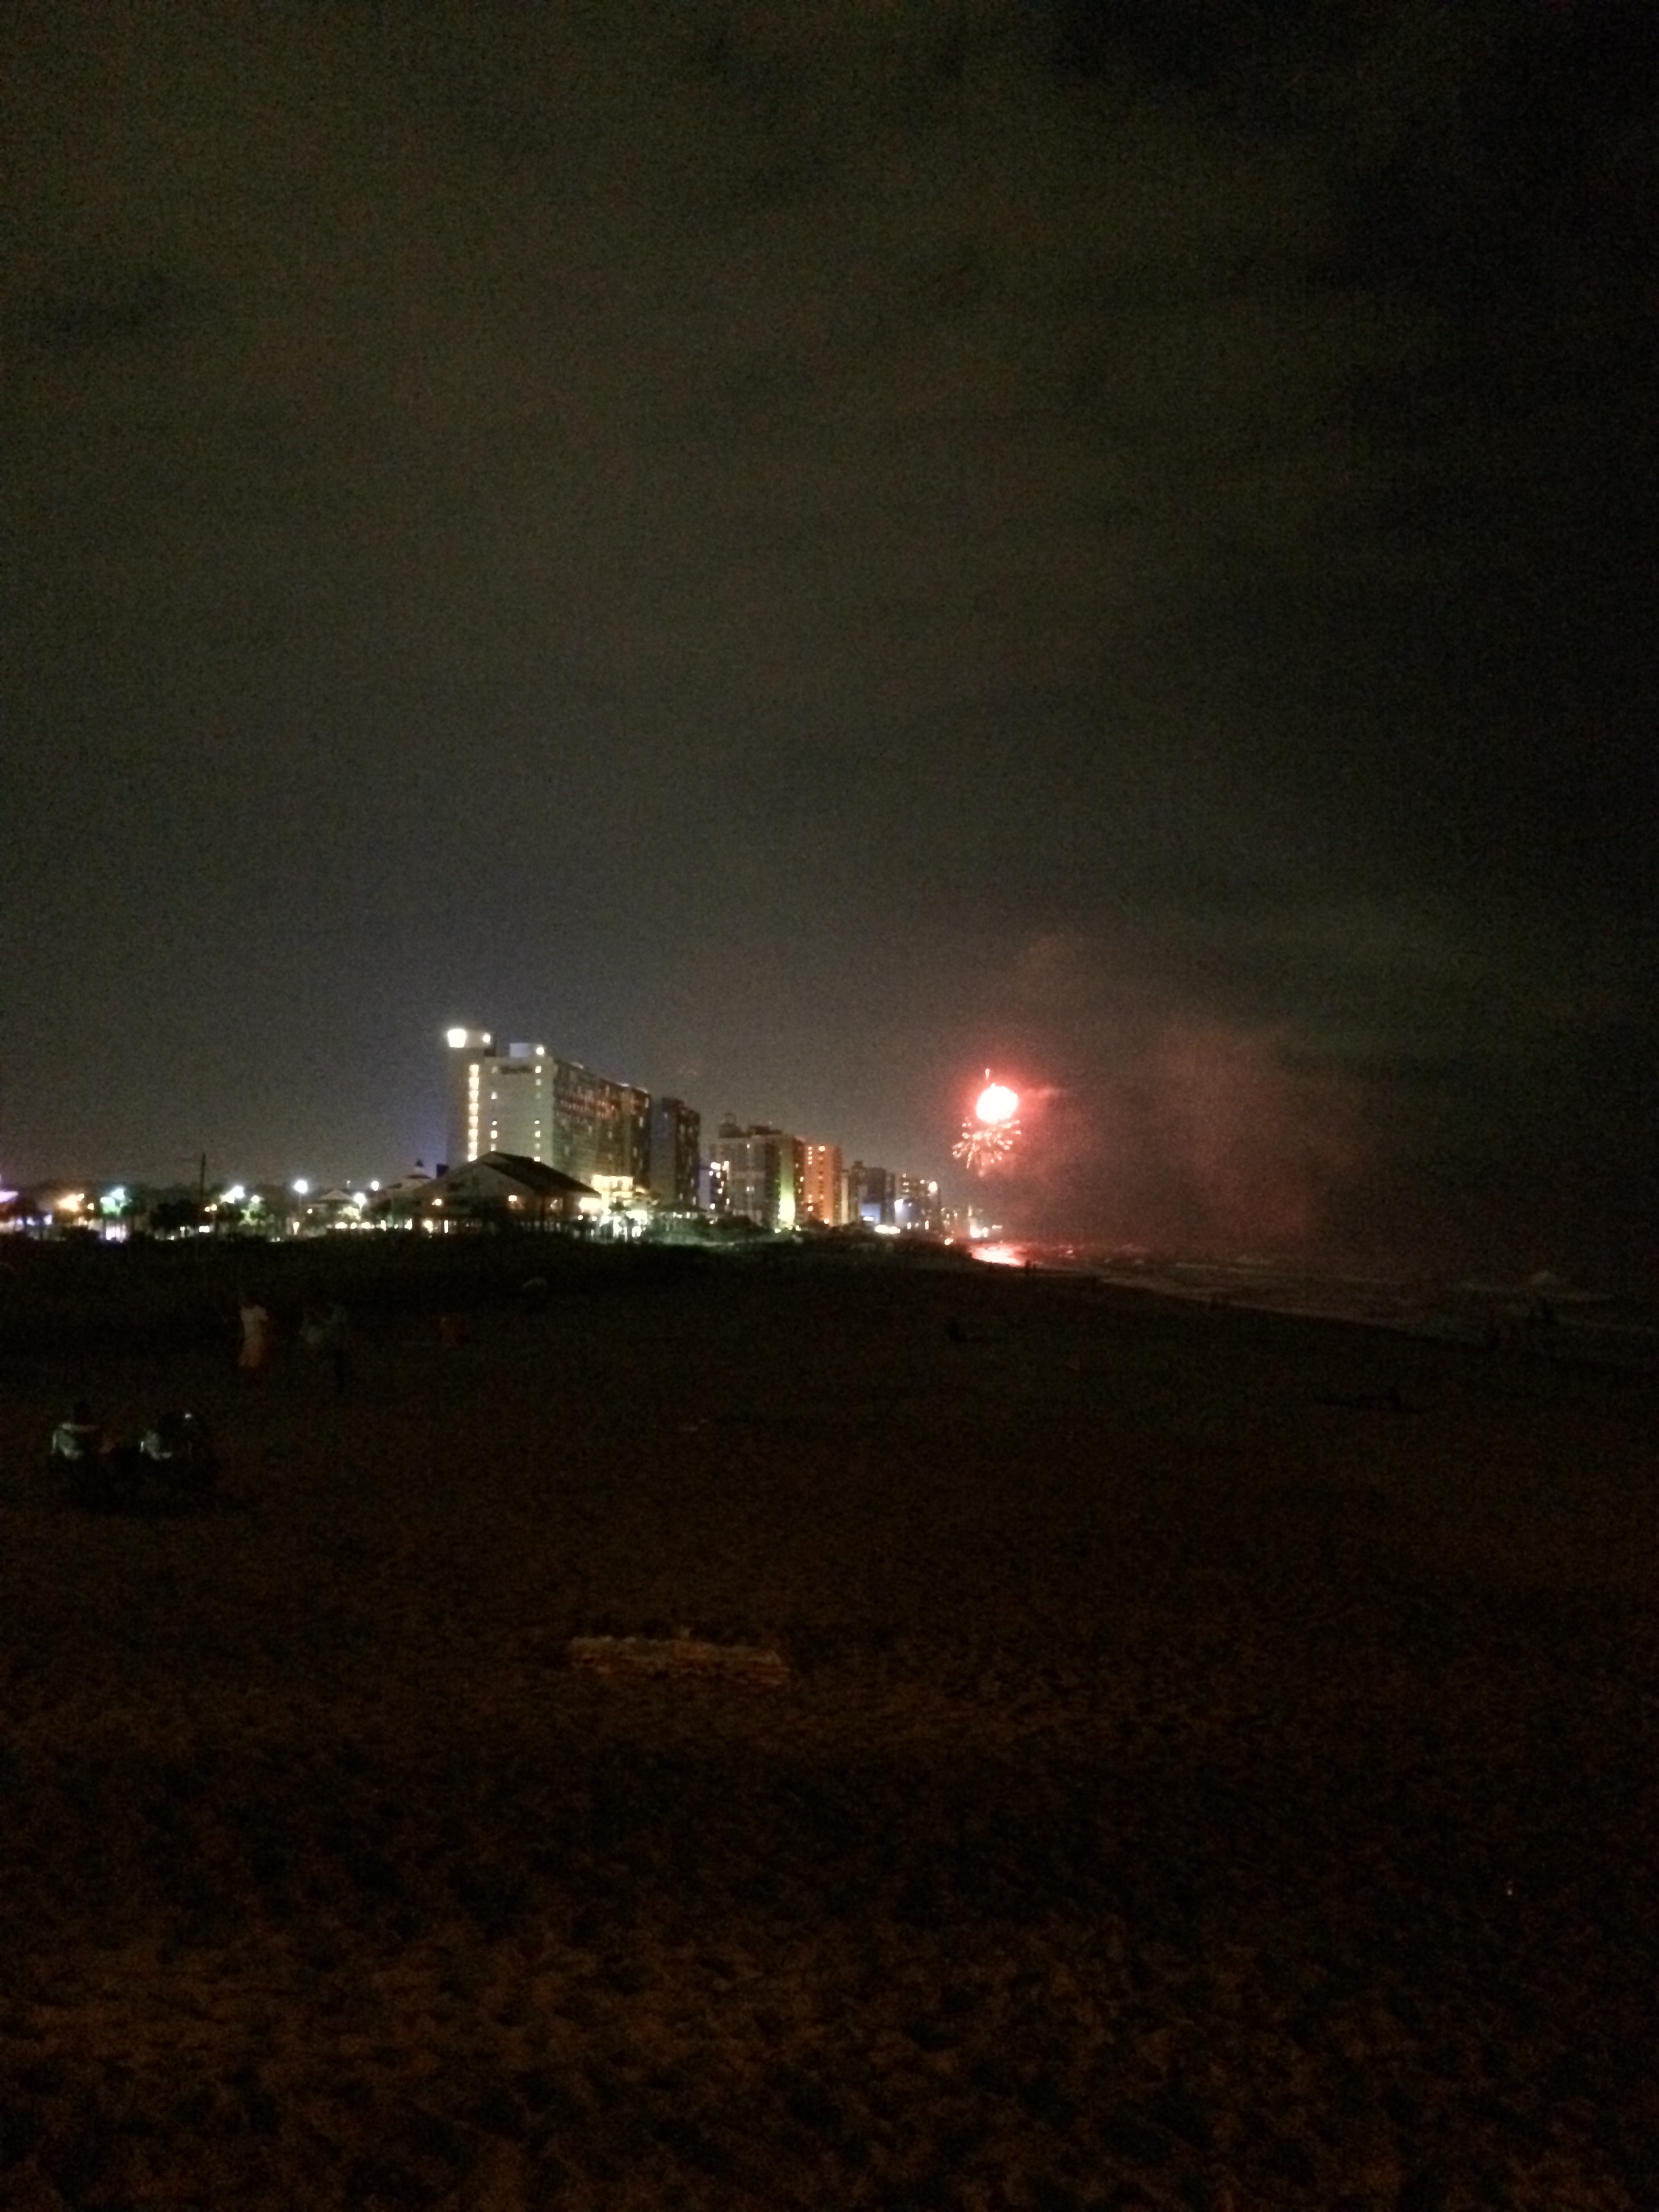 A firework goes off in the distance as Sidney and I watched from the pier of the beach.